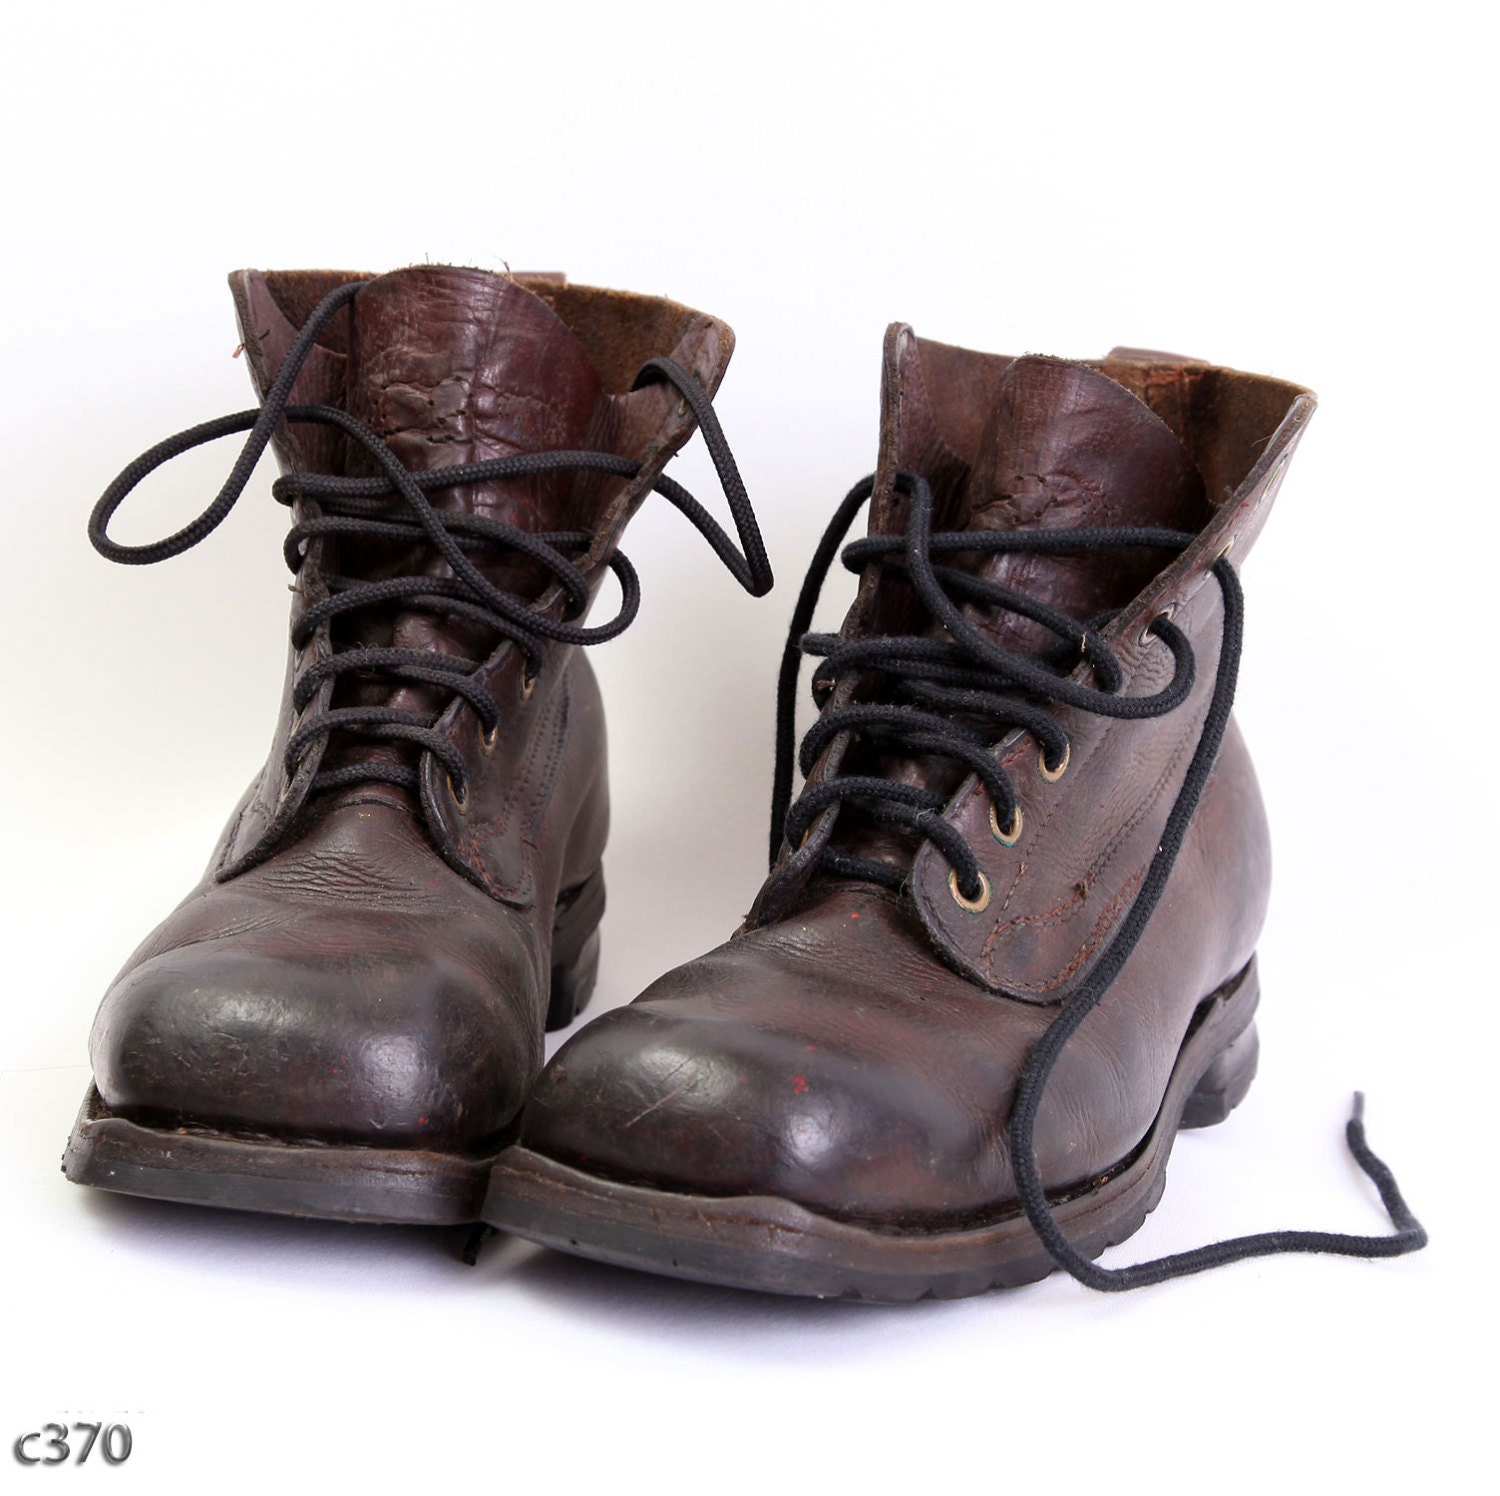 60s army combat boots war brown leather distressed